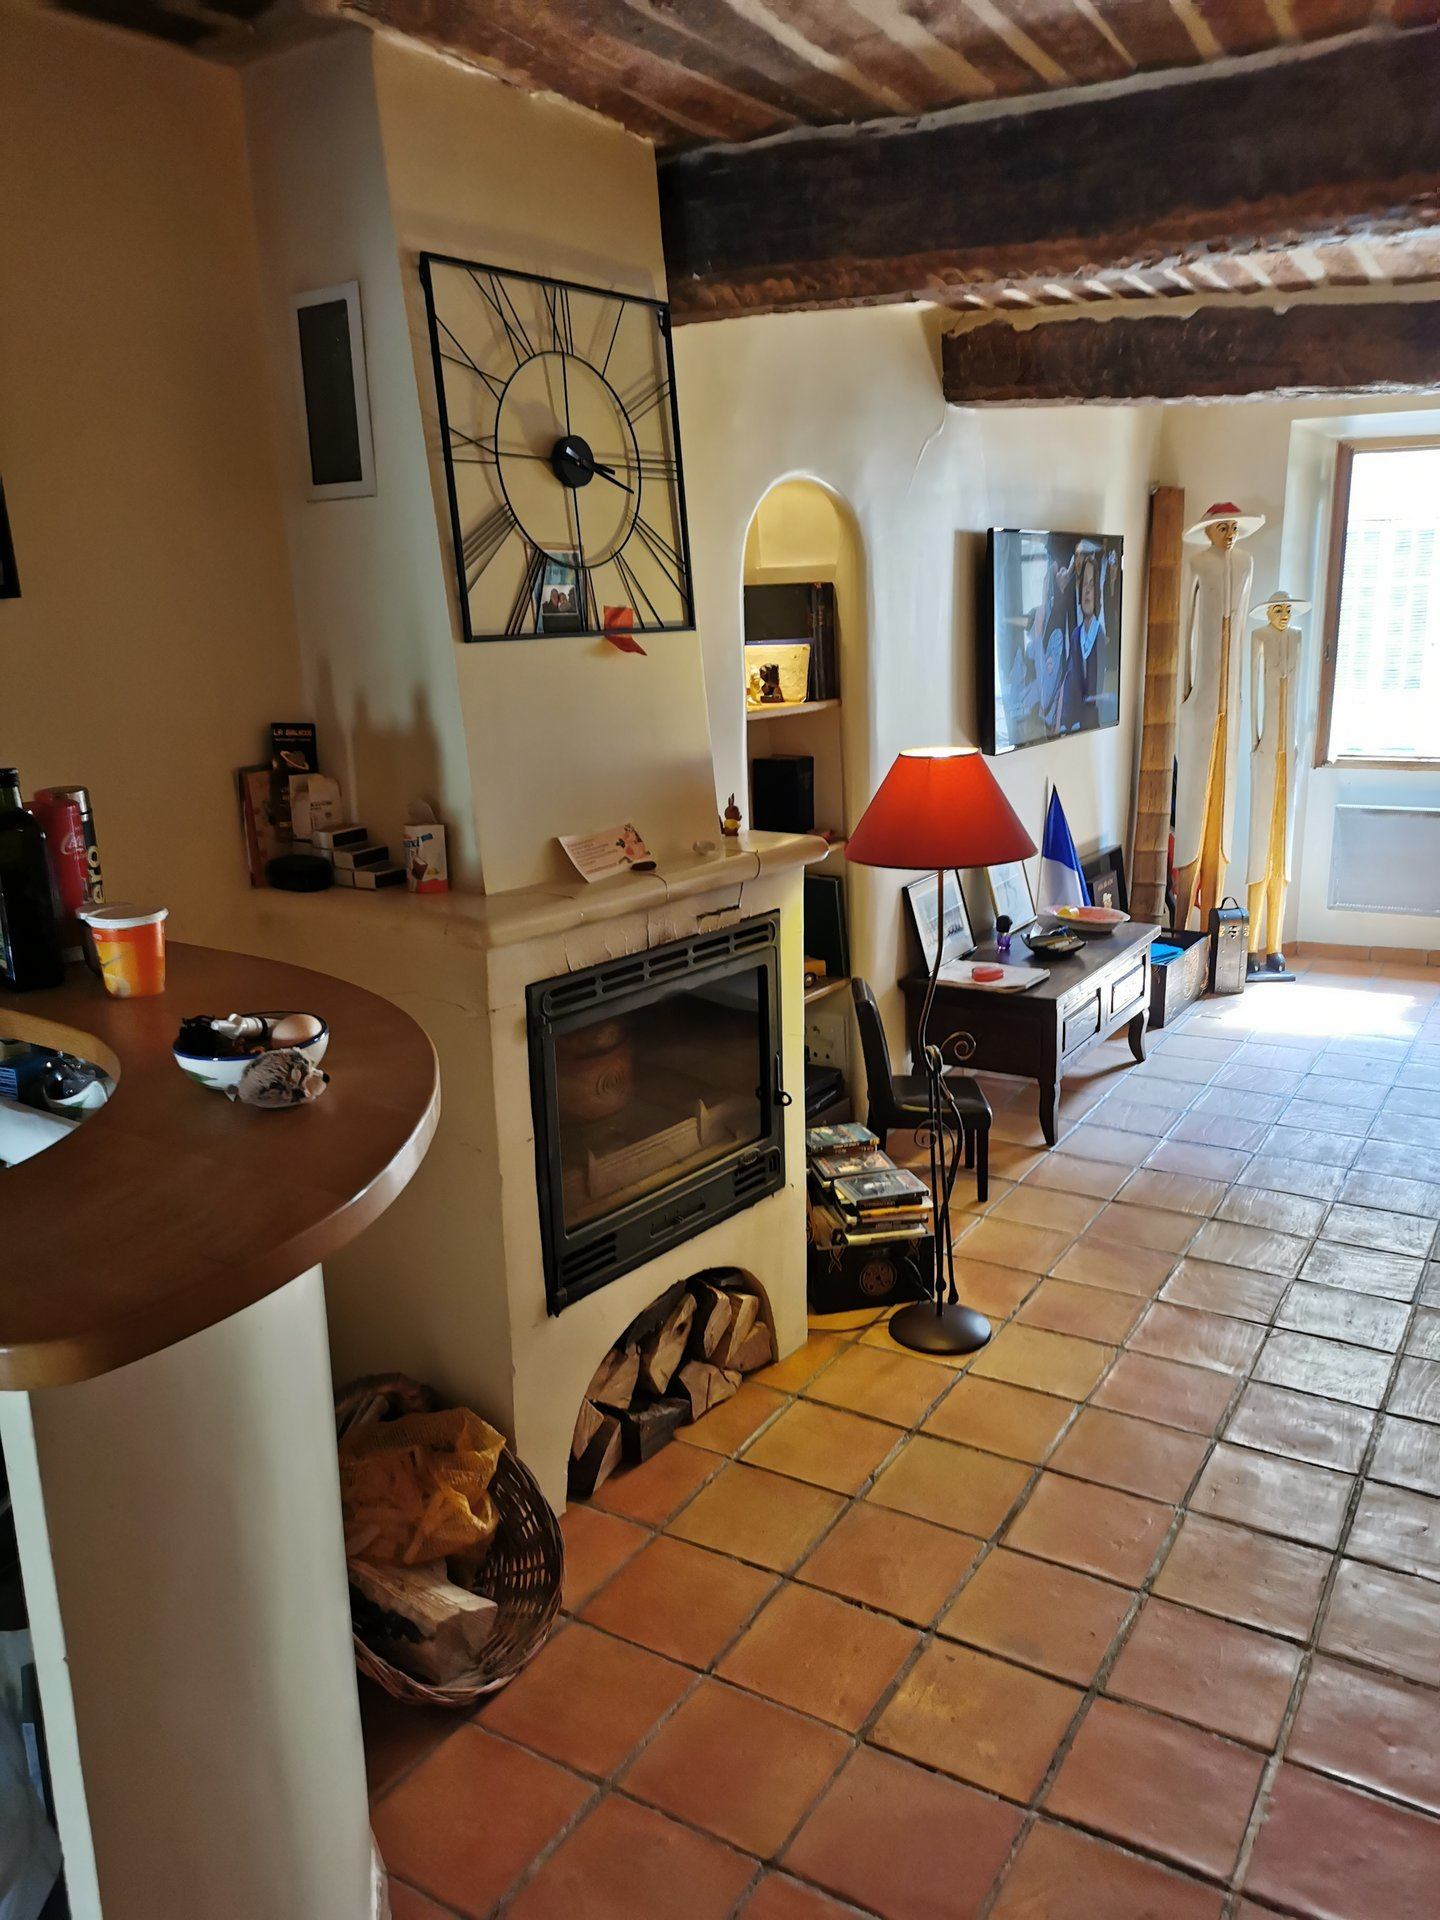 Bel appartement à SAINT-VALLIER-DE-THIEY